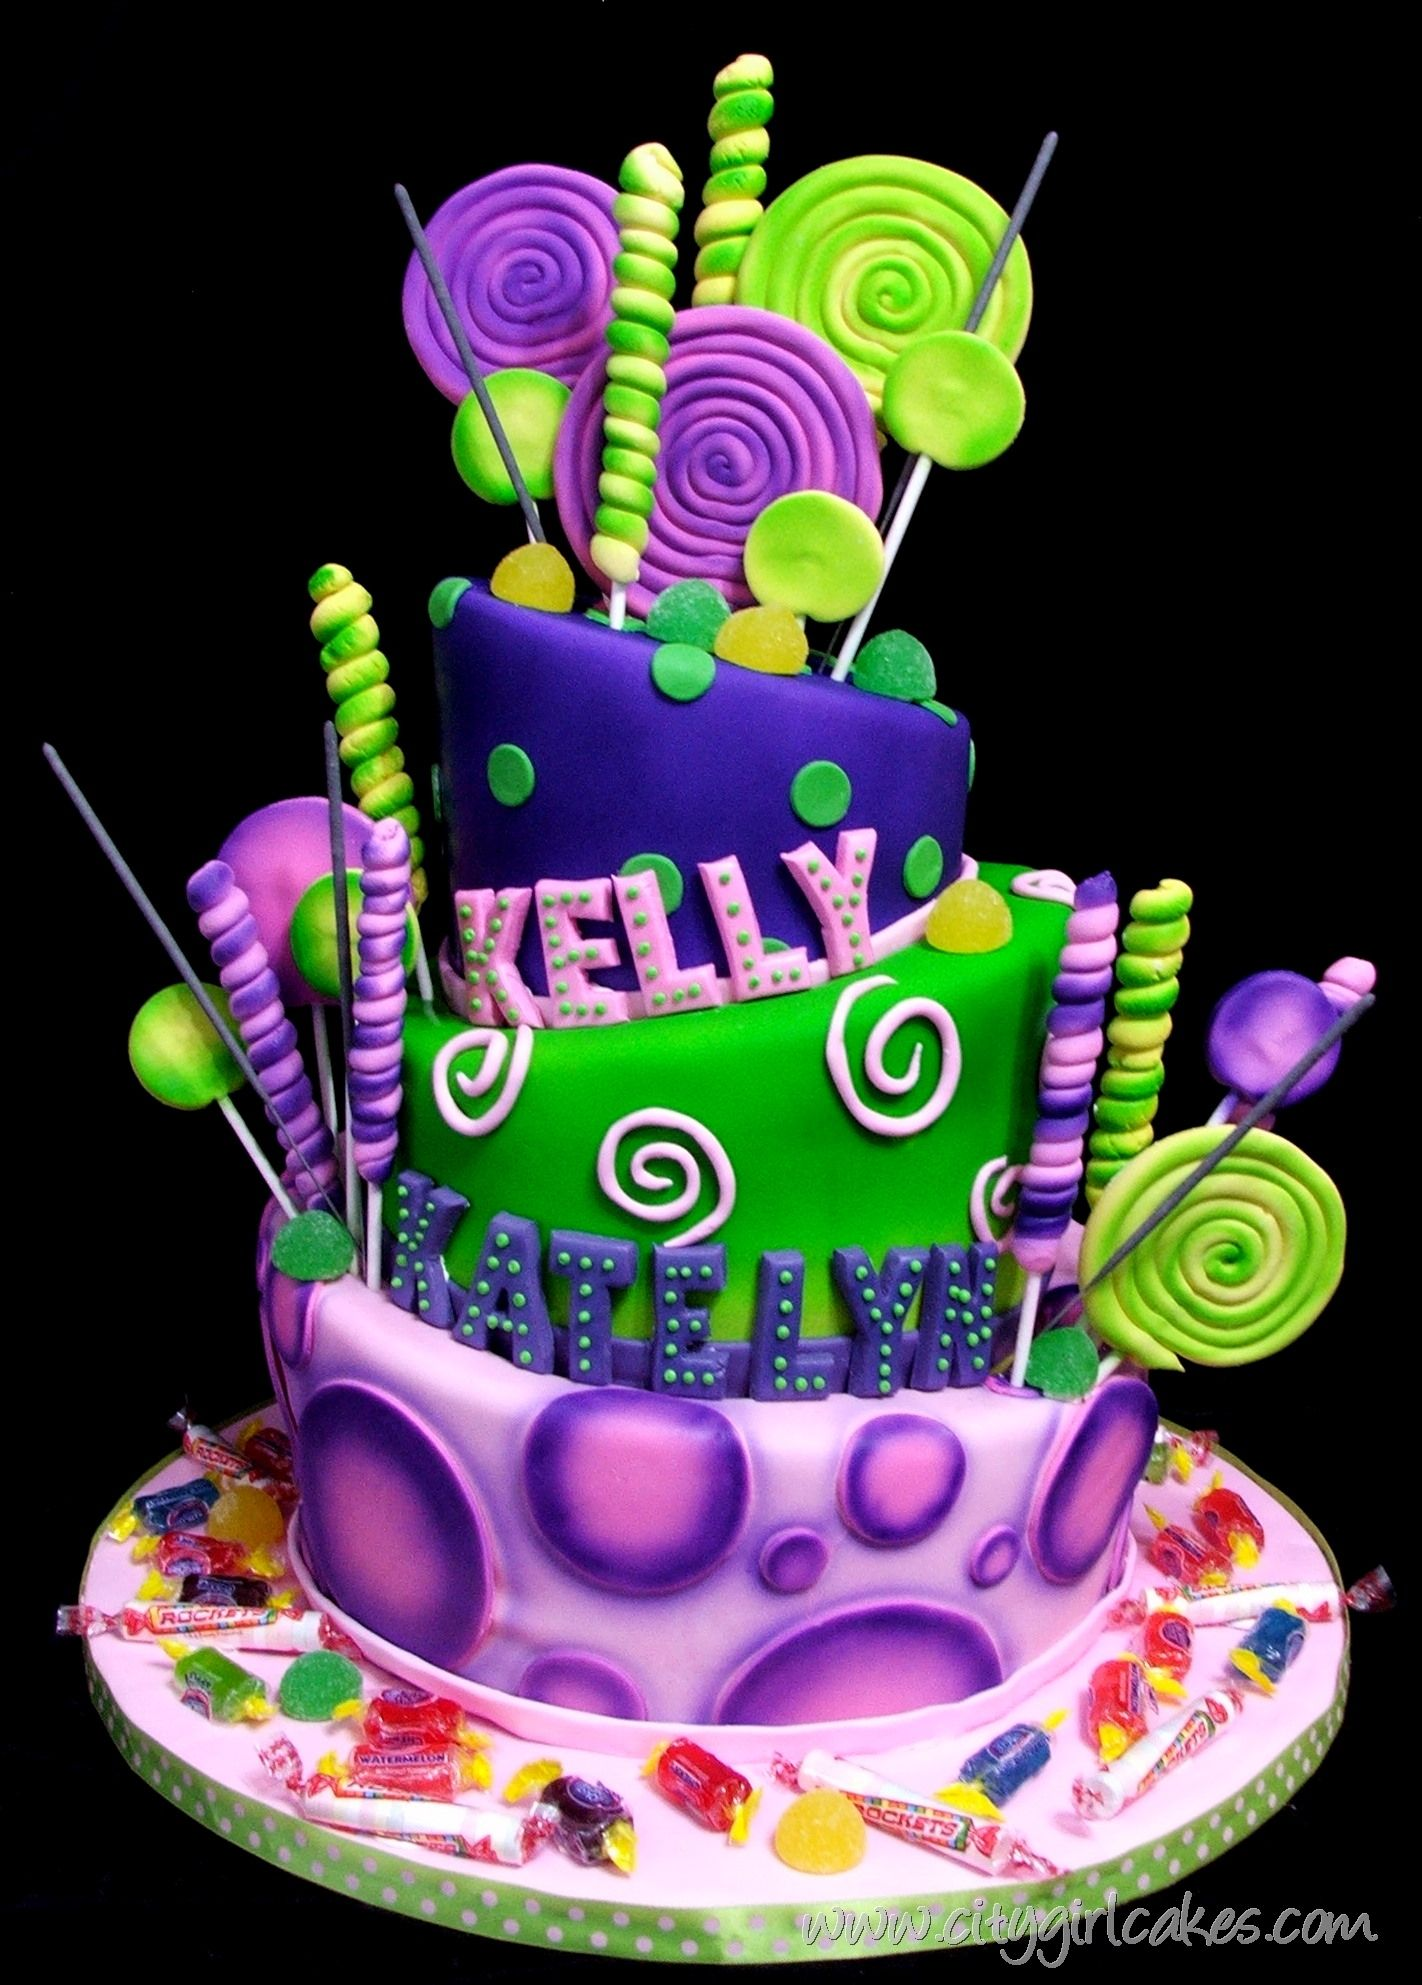 Candyland Tiered Cake